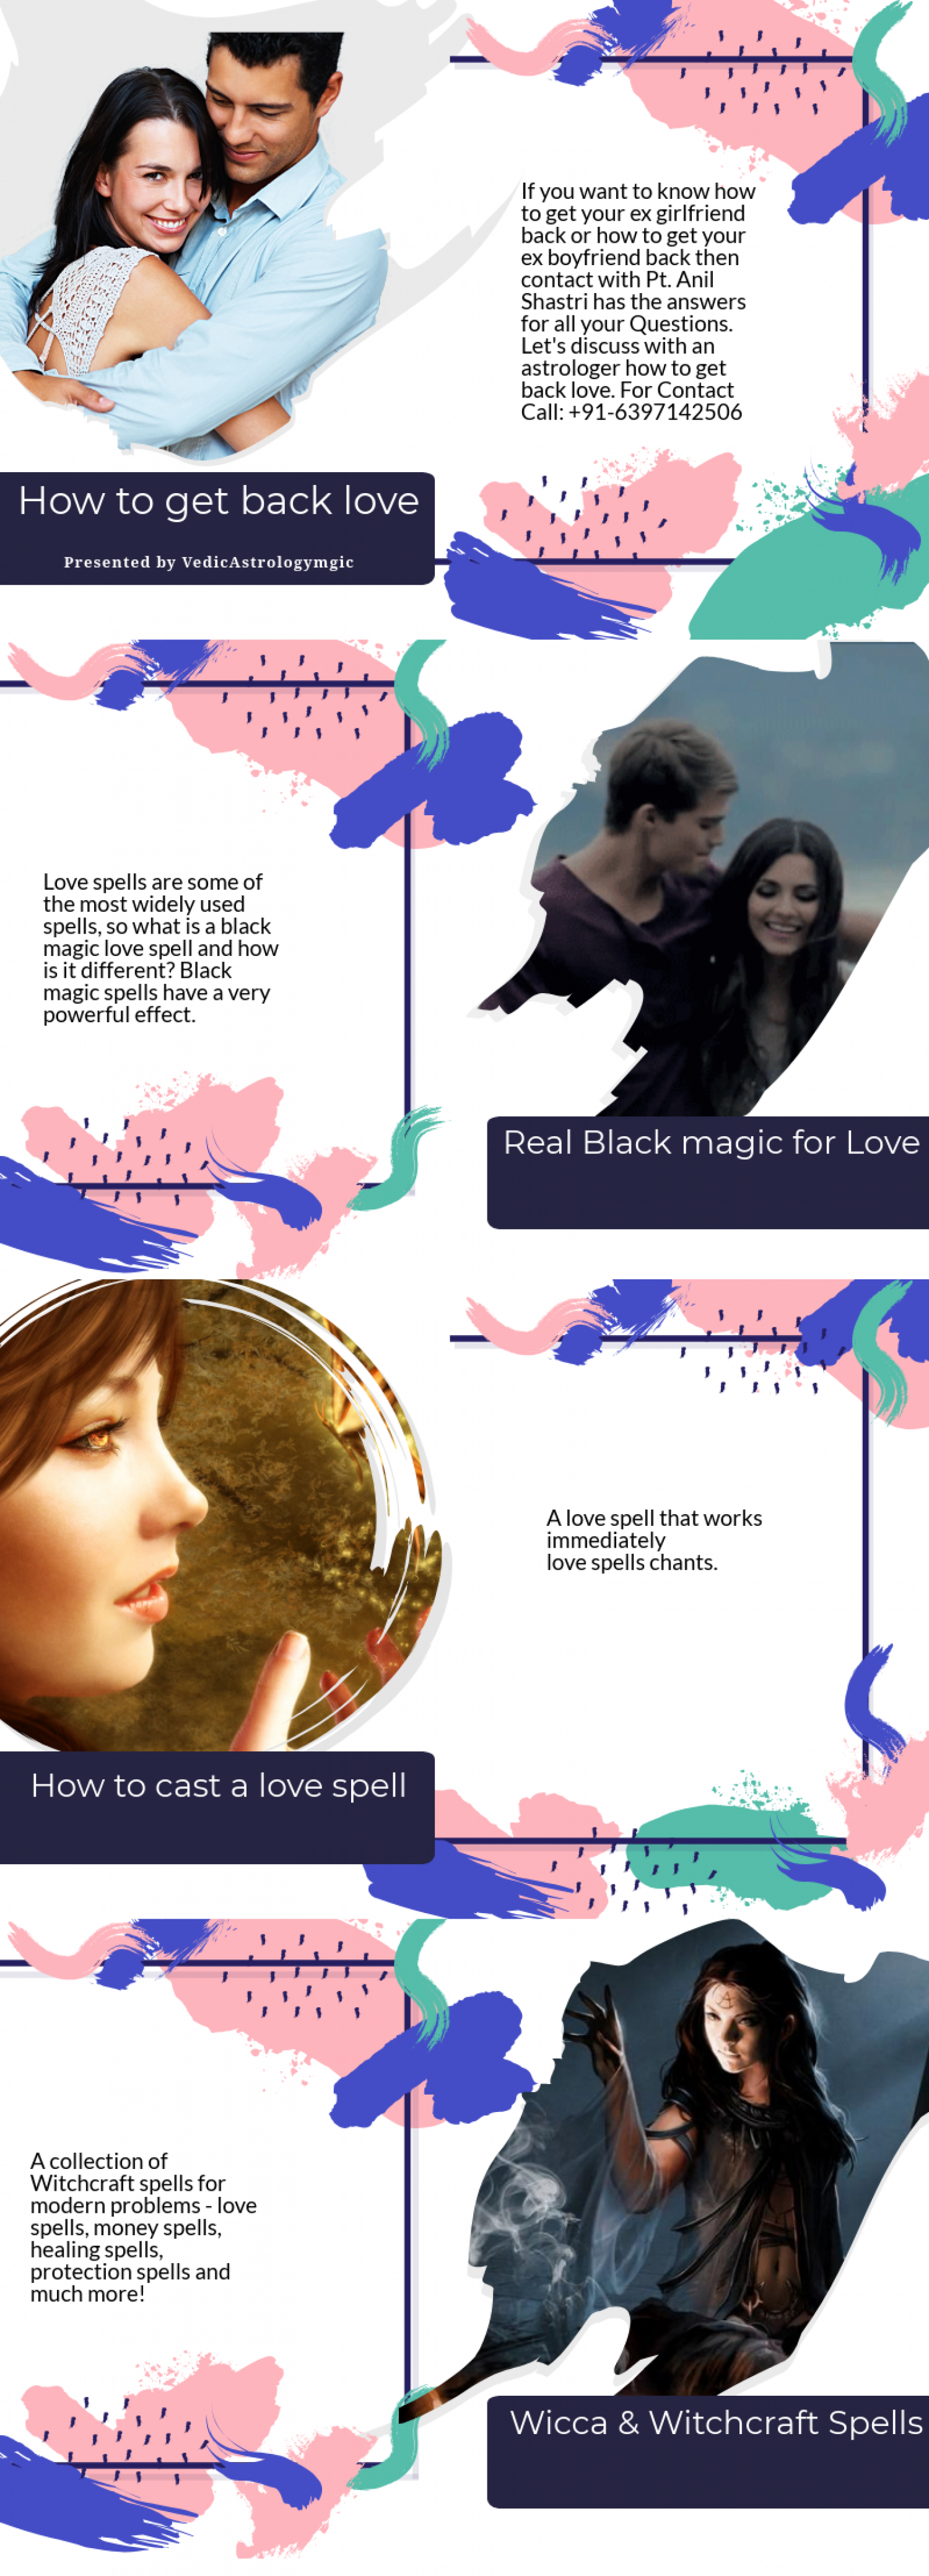 How to get back love Infographic